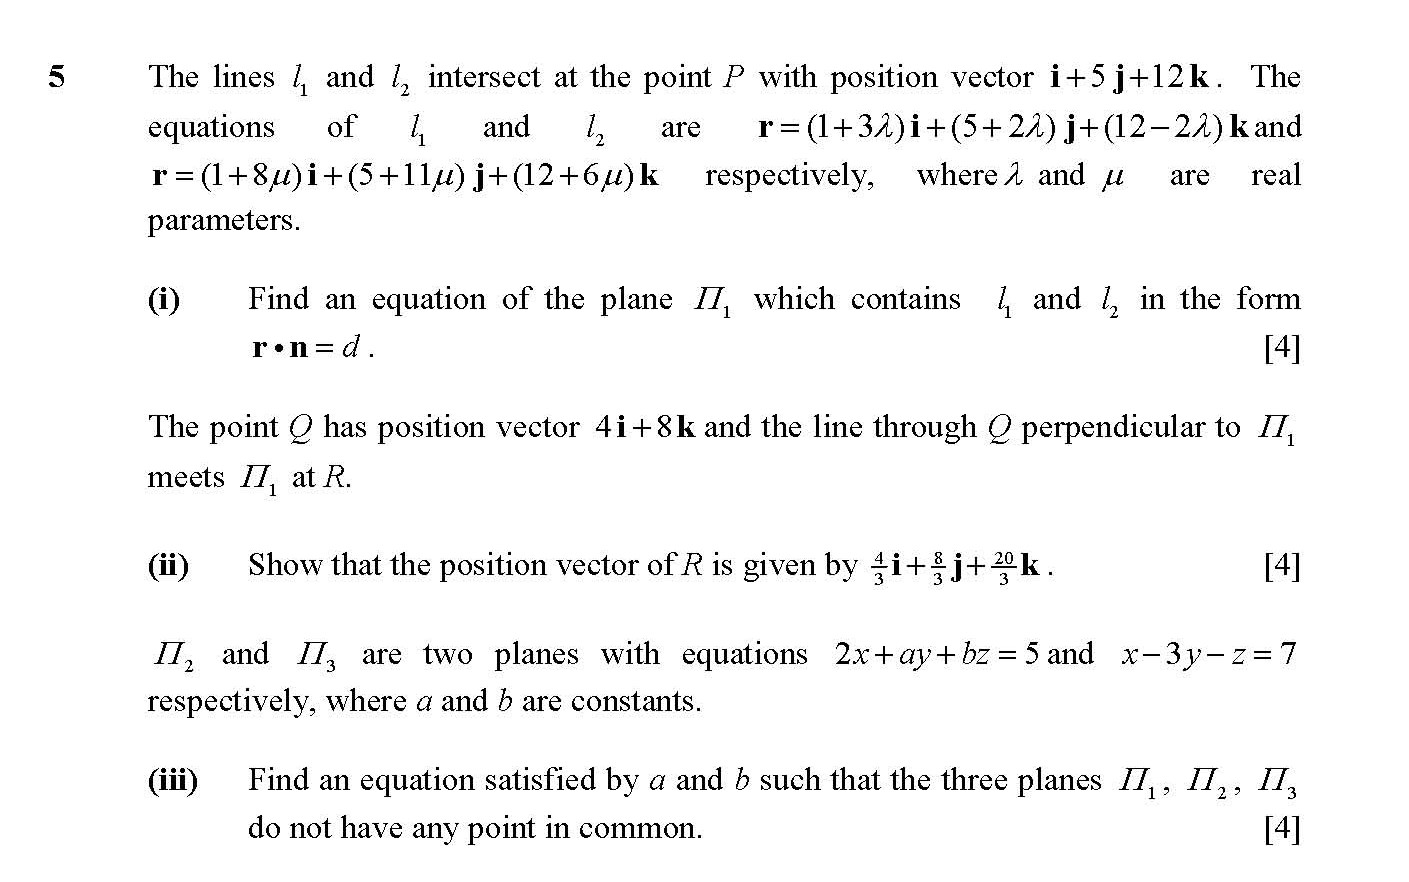 Tenth Grade (Grade 10) Math Worksheets, Tests, and Activities